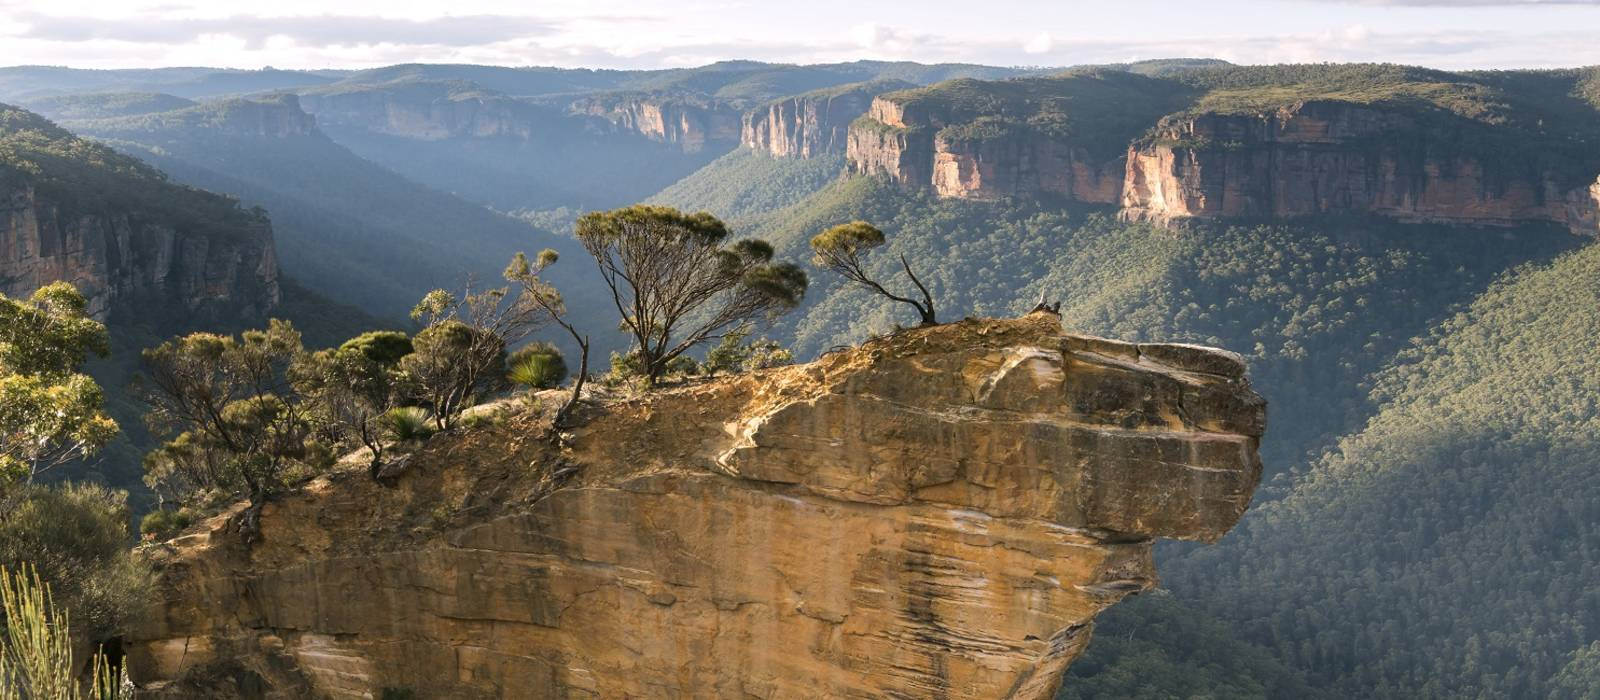 Aussichtspunkt von Hanging Rock in den Blue Mountains in Australien